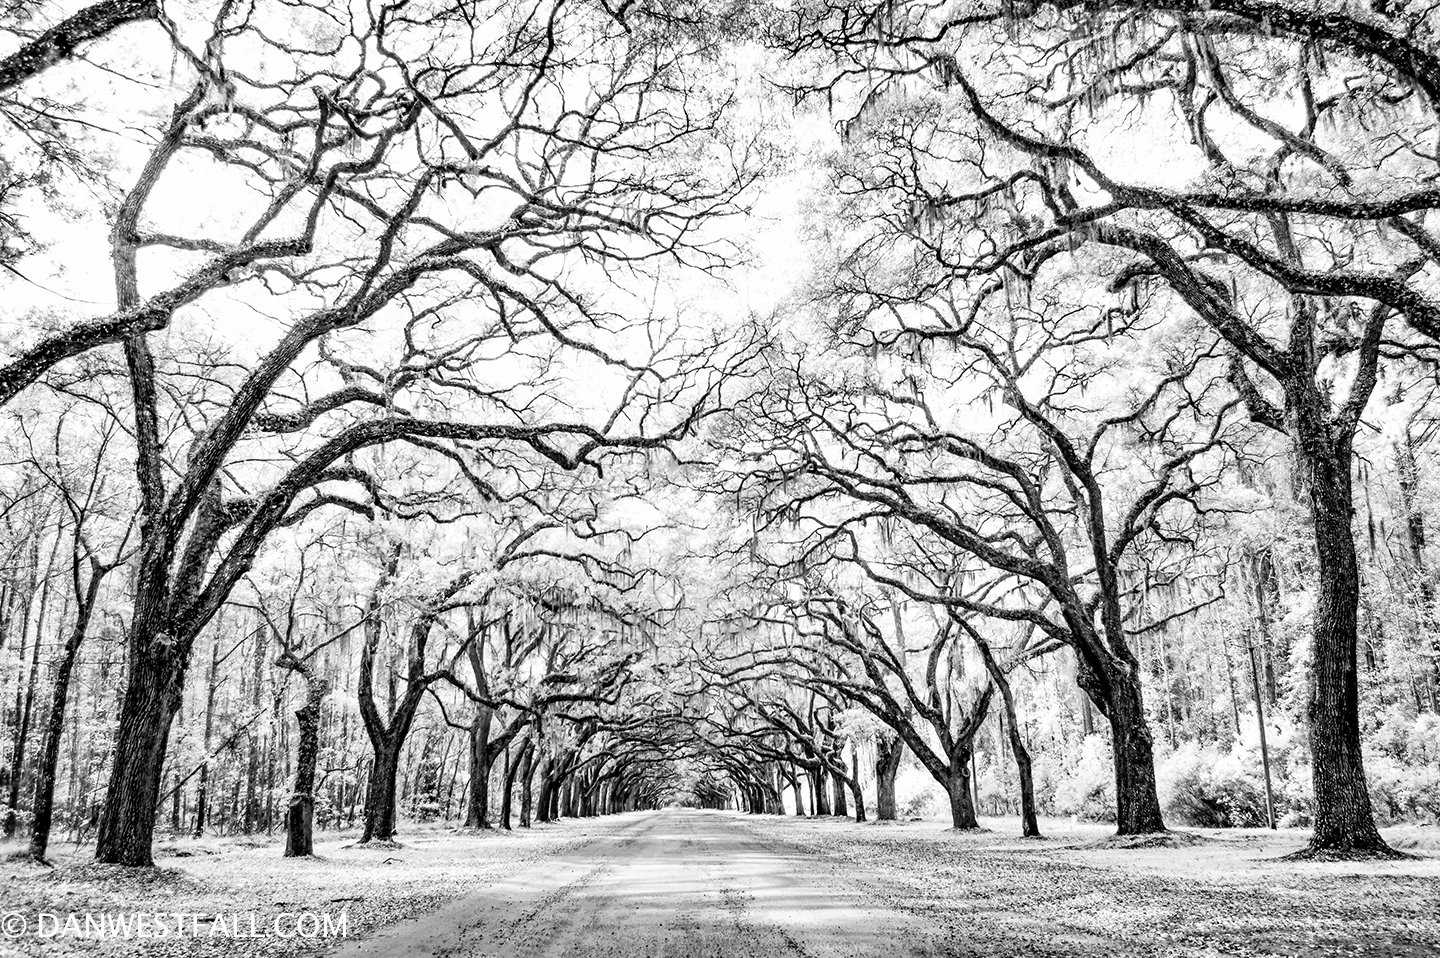 Wormsloe in Savannah USA infrared# 747